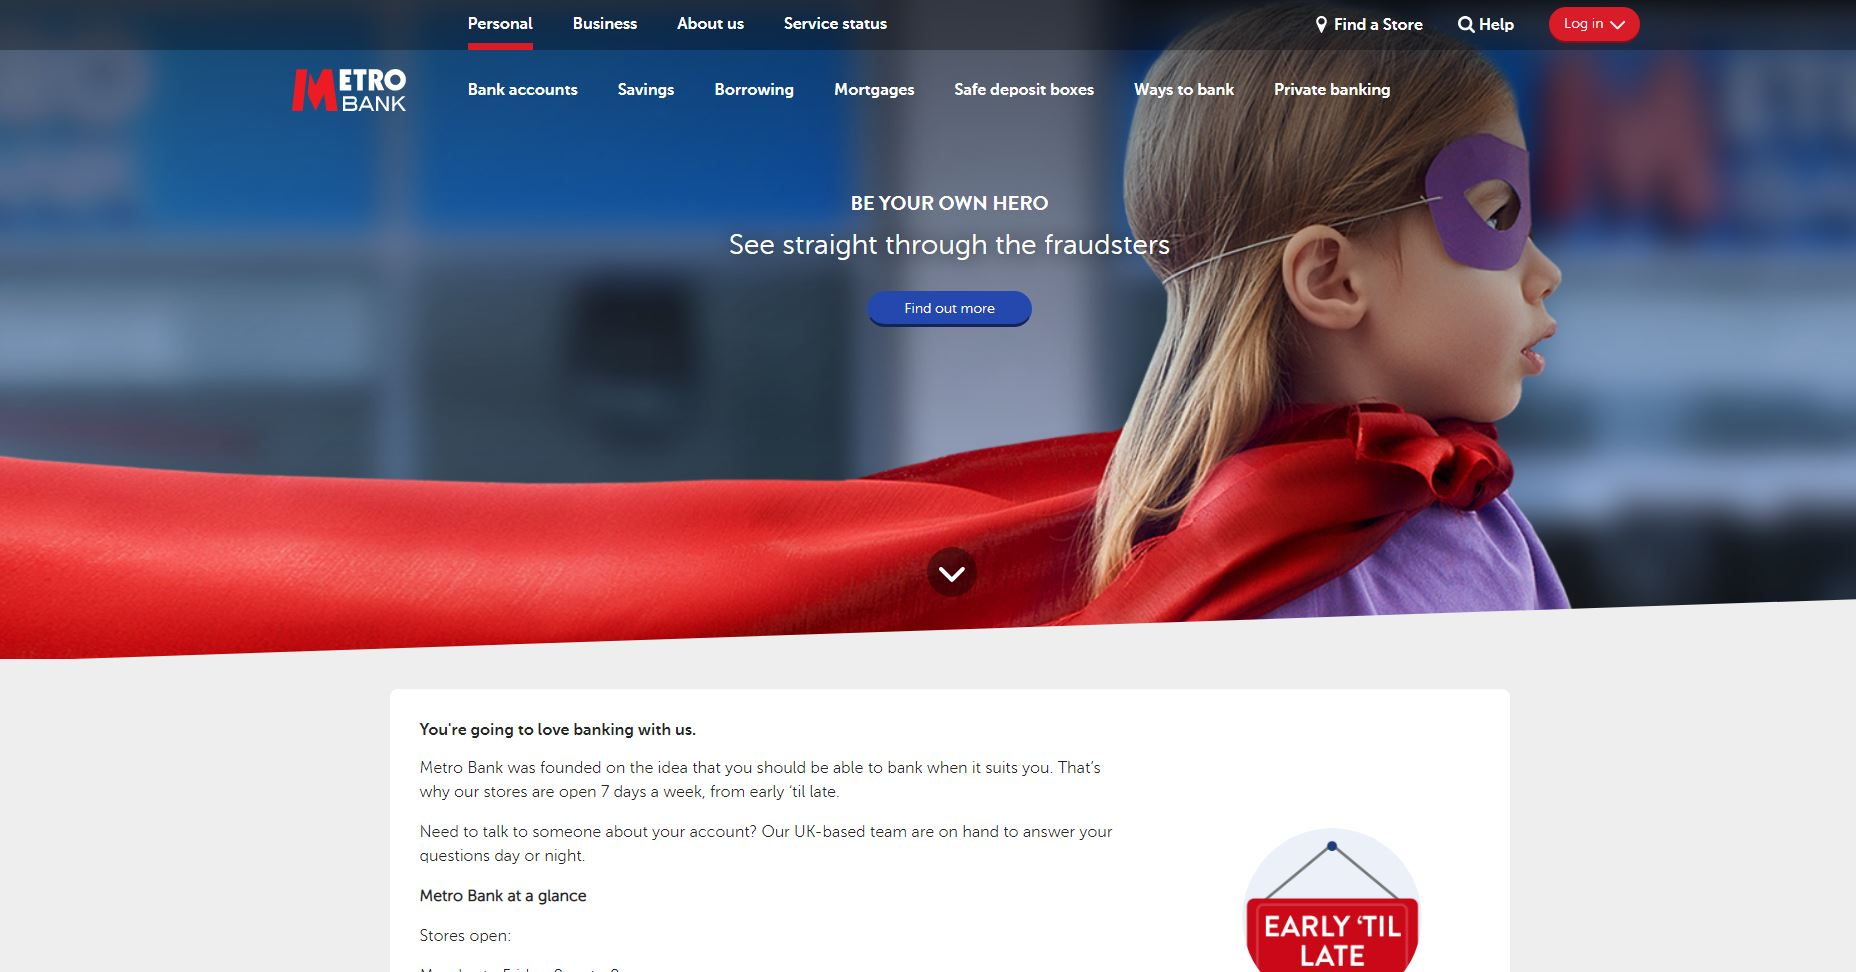 Metro Bank website homepage